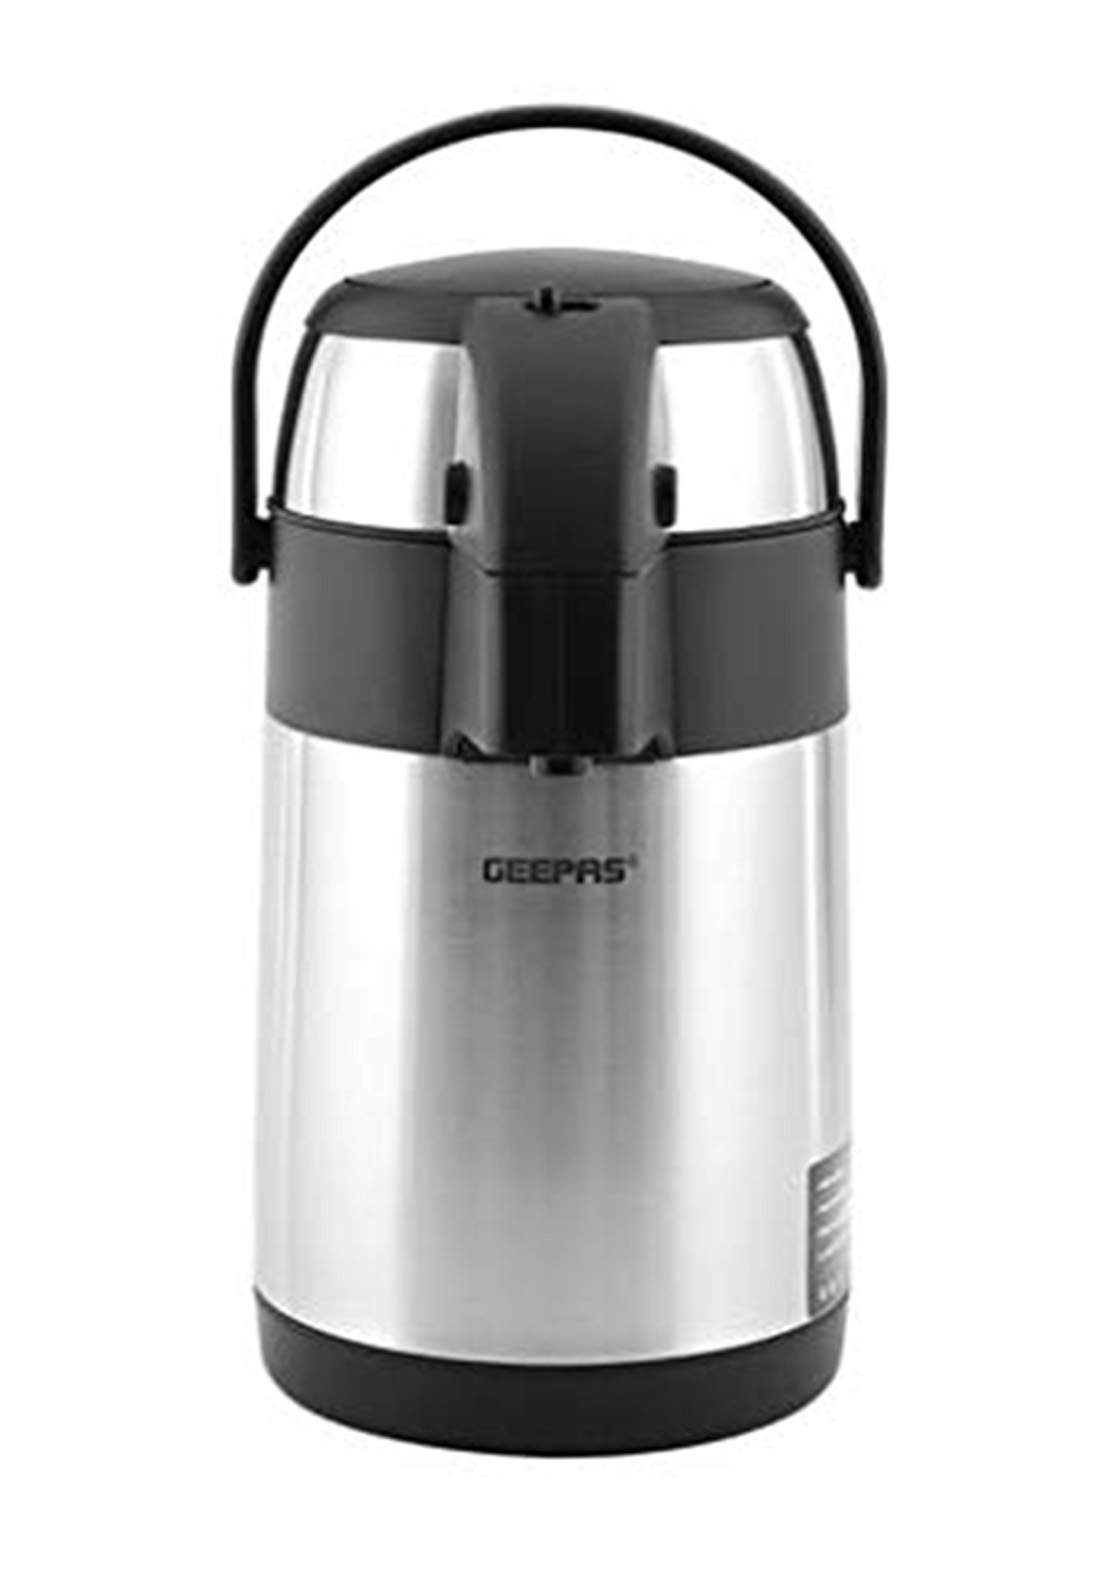 Geepas GVF5262 S/S Airpot Double Wall Flask 2.5L ترمز